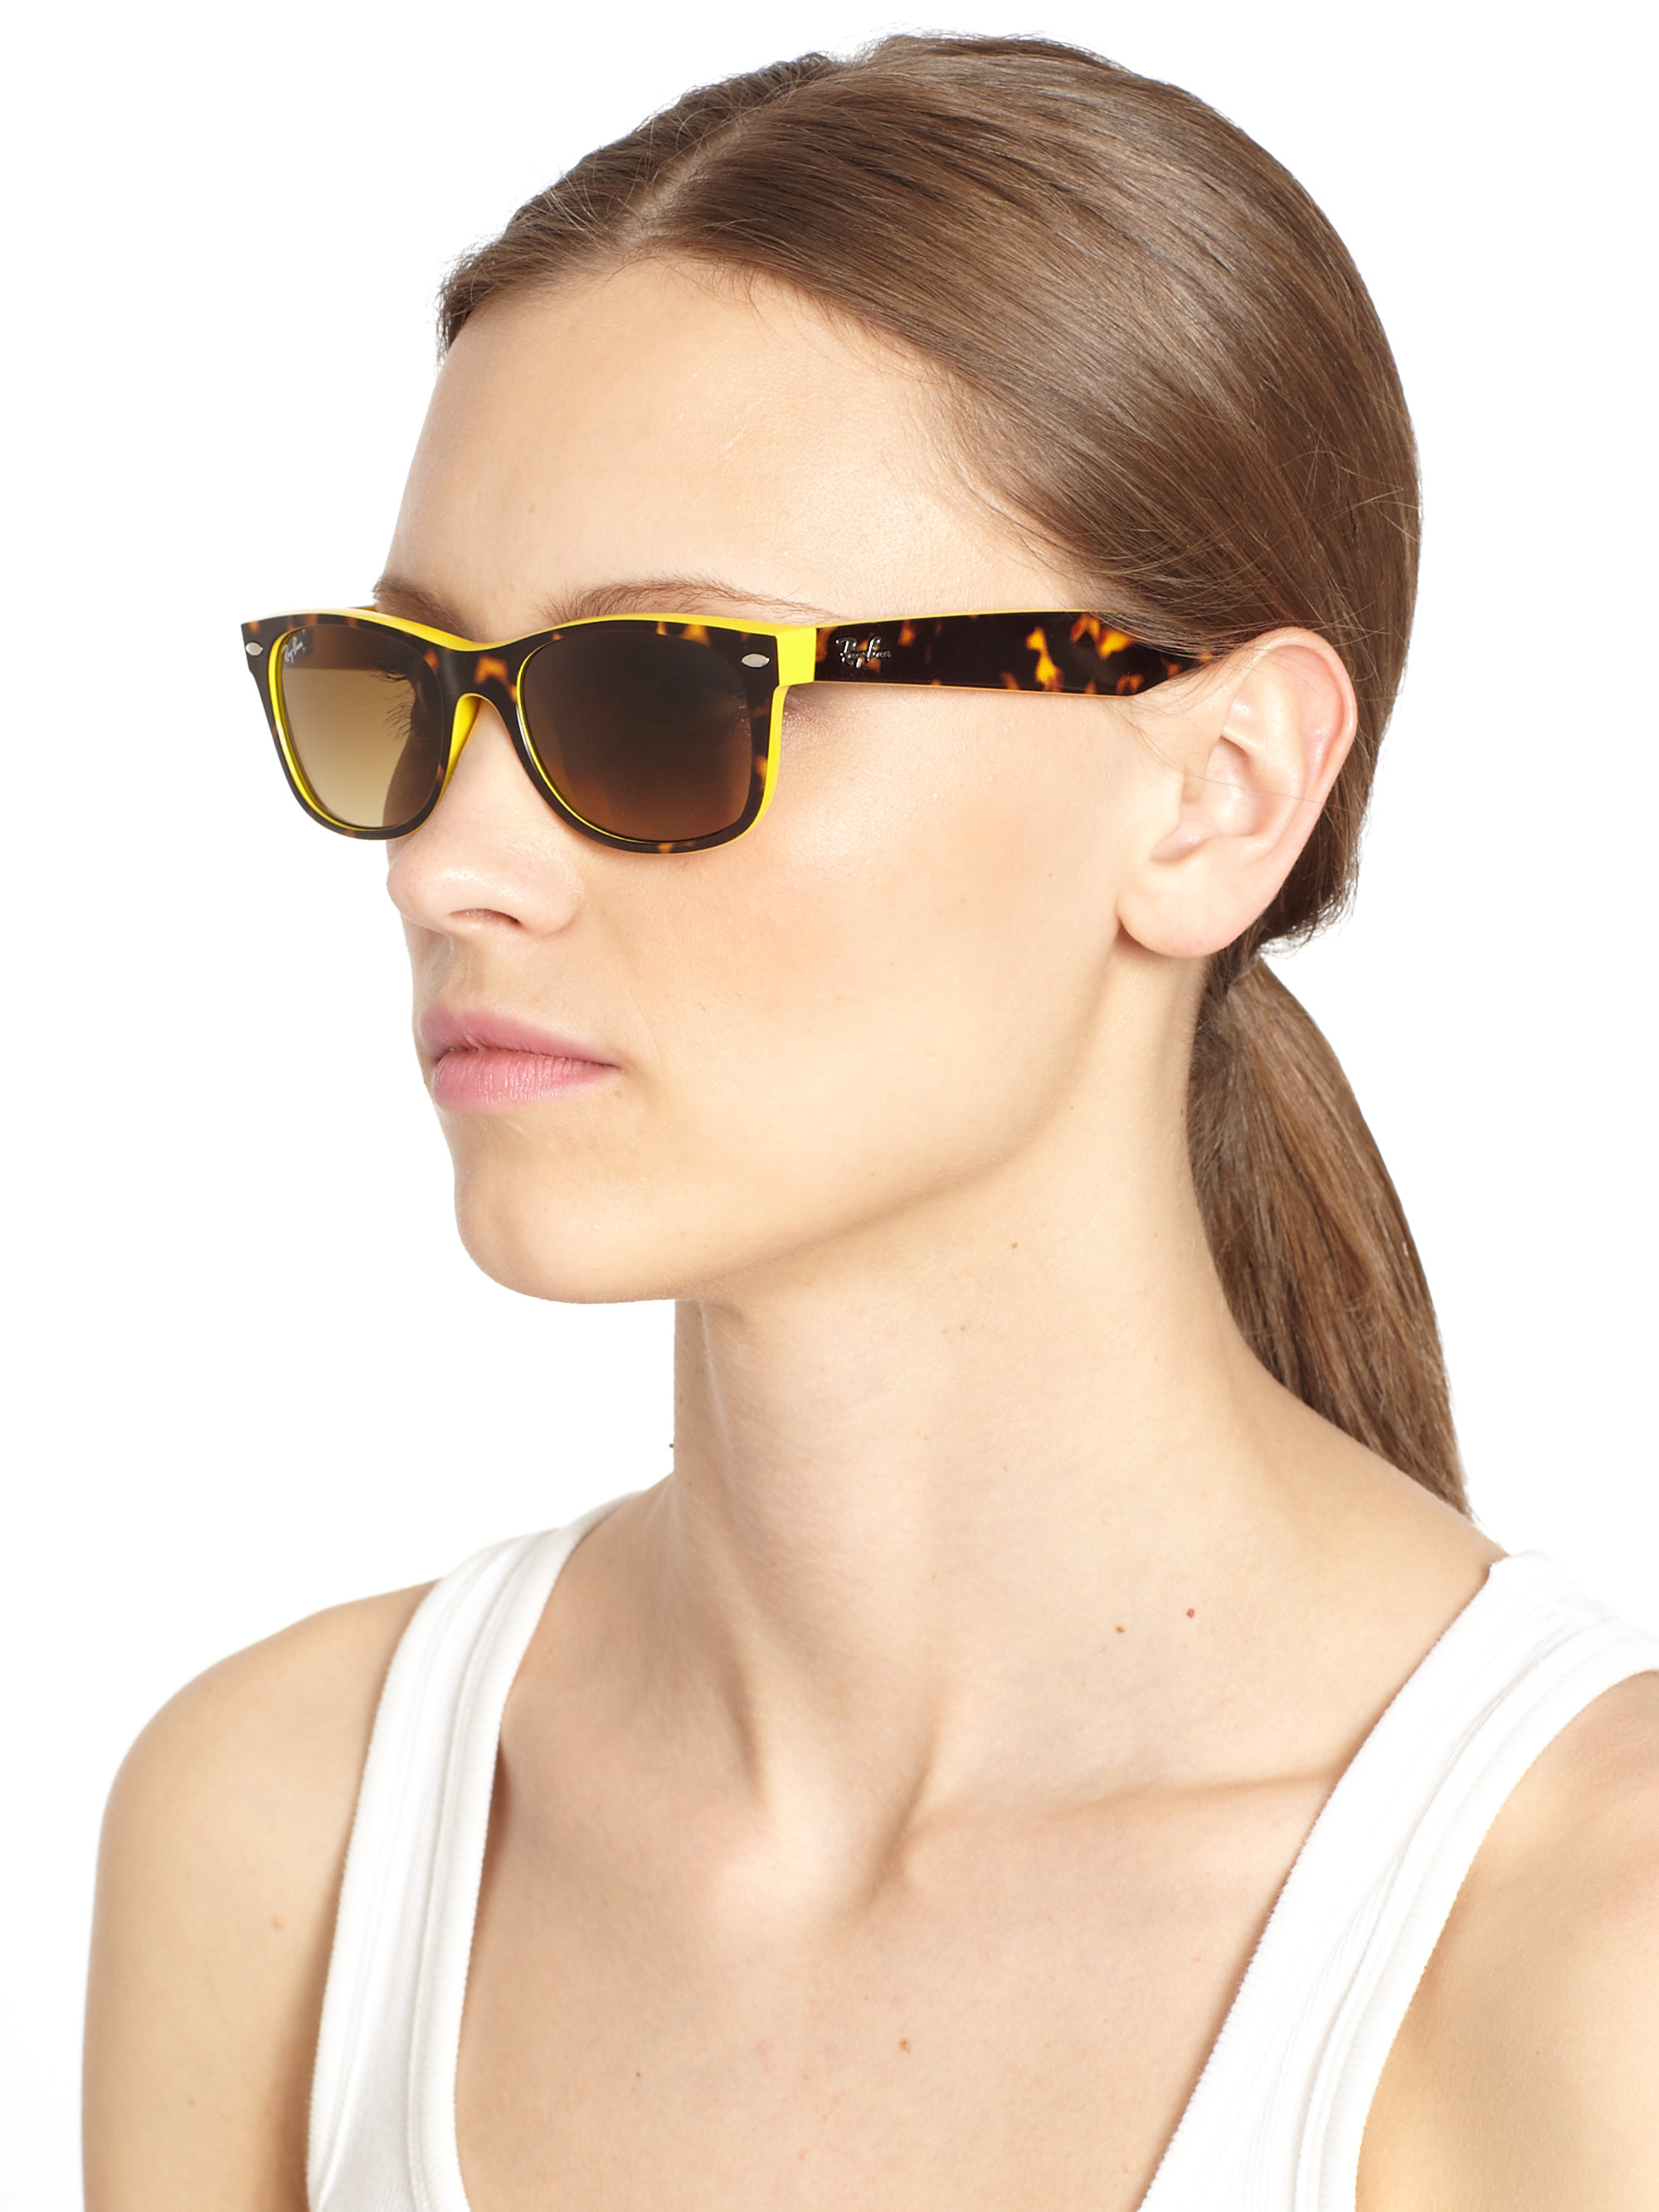 ray ban wayfarer womens  Ray-ban New Wayfarer Sunglasses in Yellow